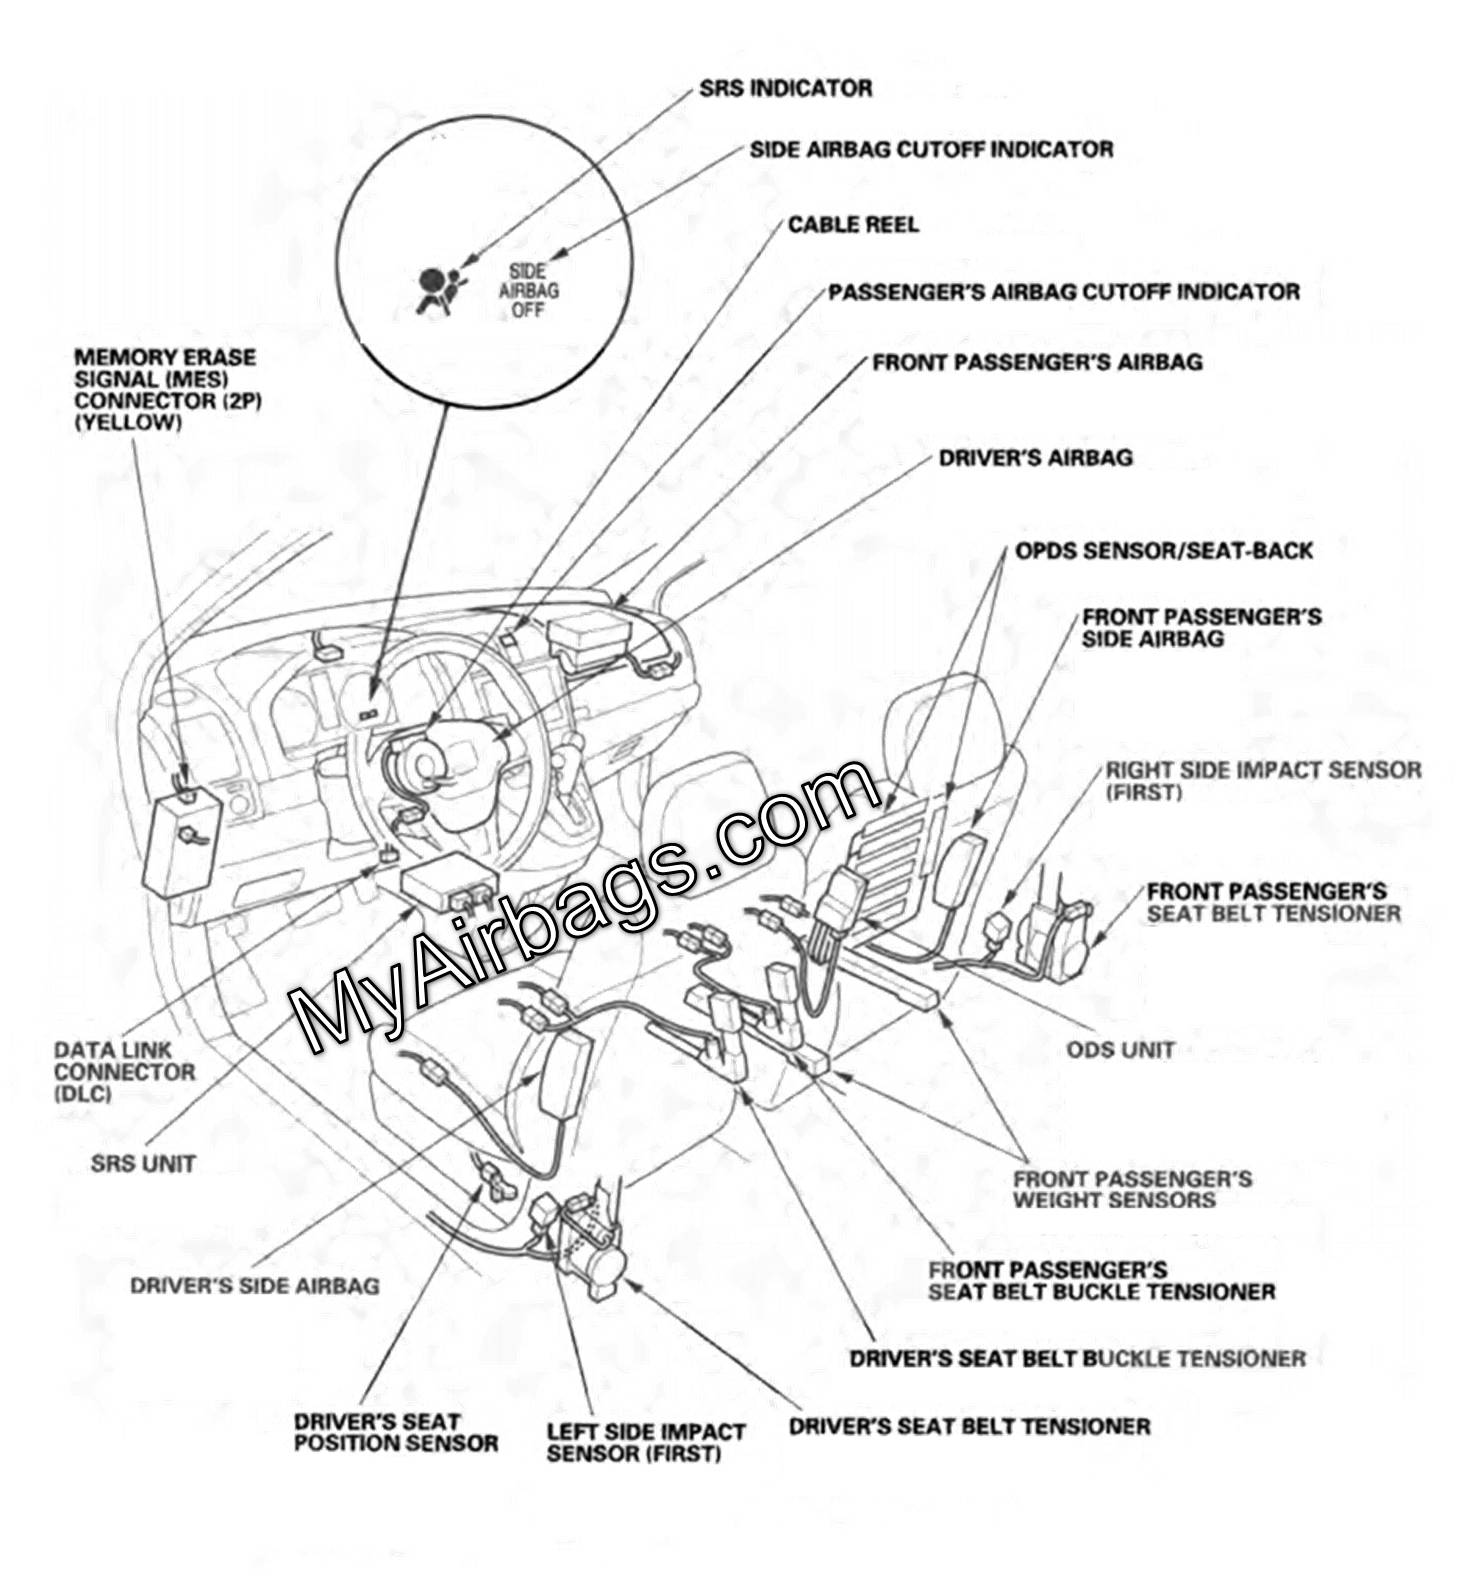 Pt Cruiser Wiring Diagram Solidfonts - 1964 chrysler newport wiring diagram